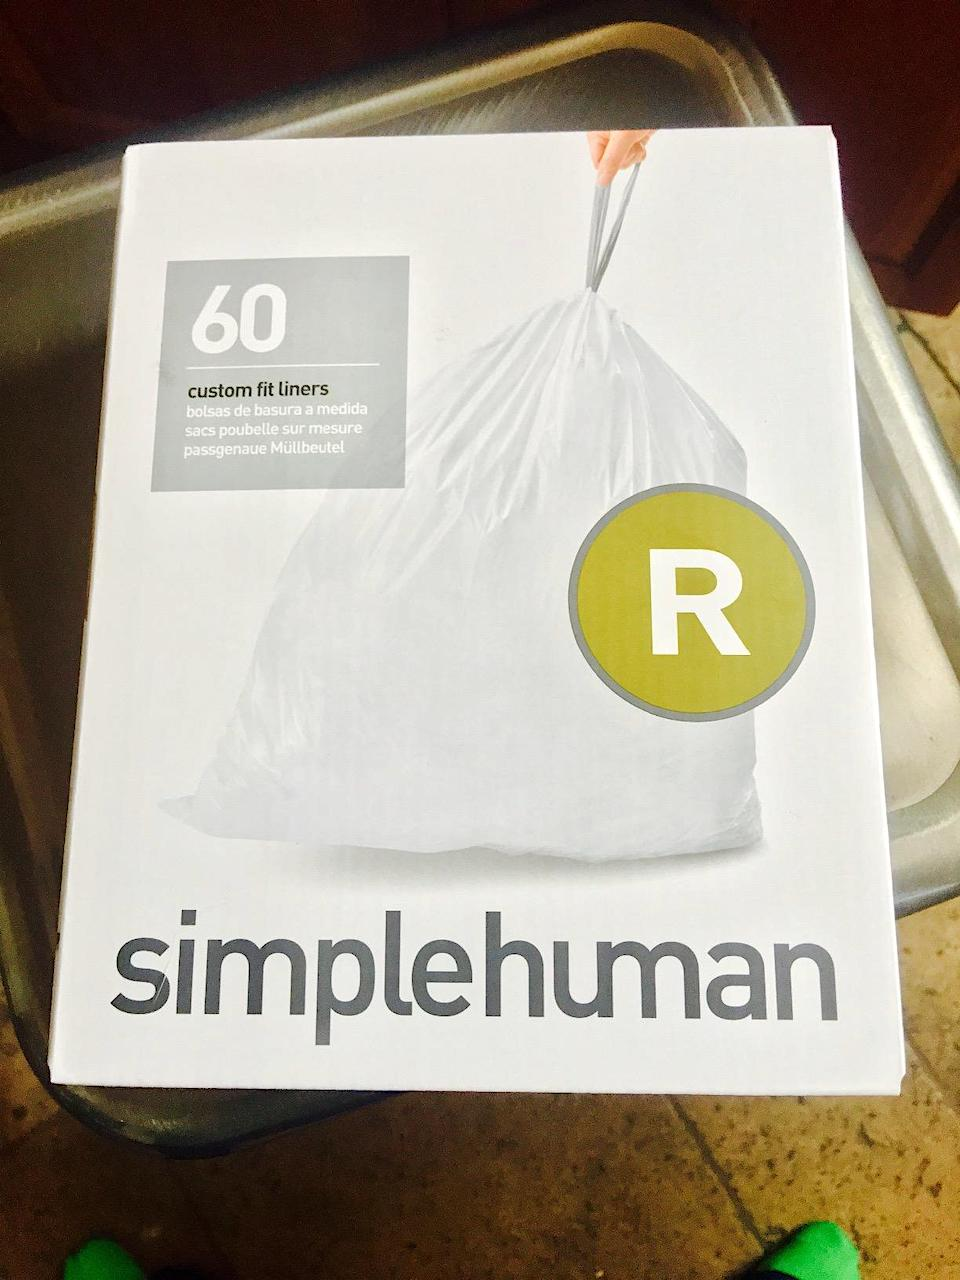 Simplehuman custom fit liners 60-count box